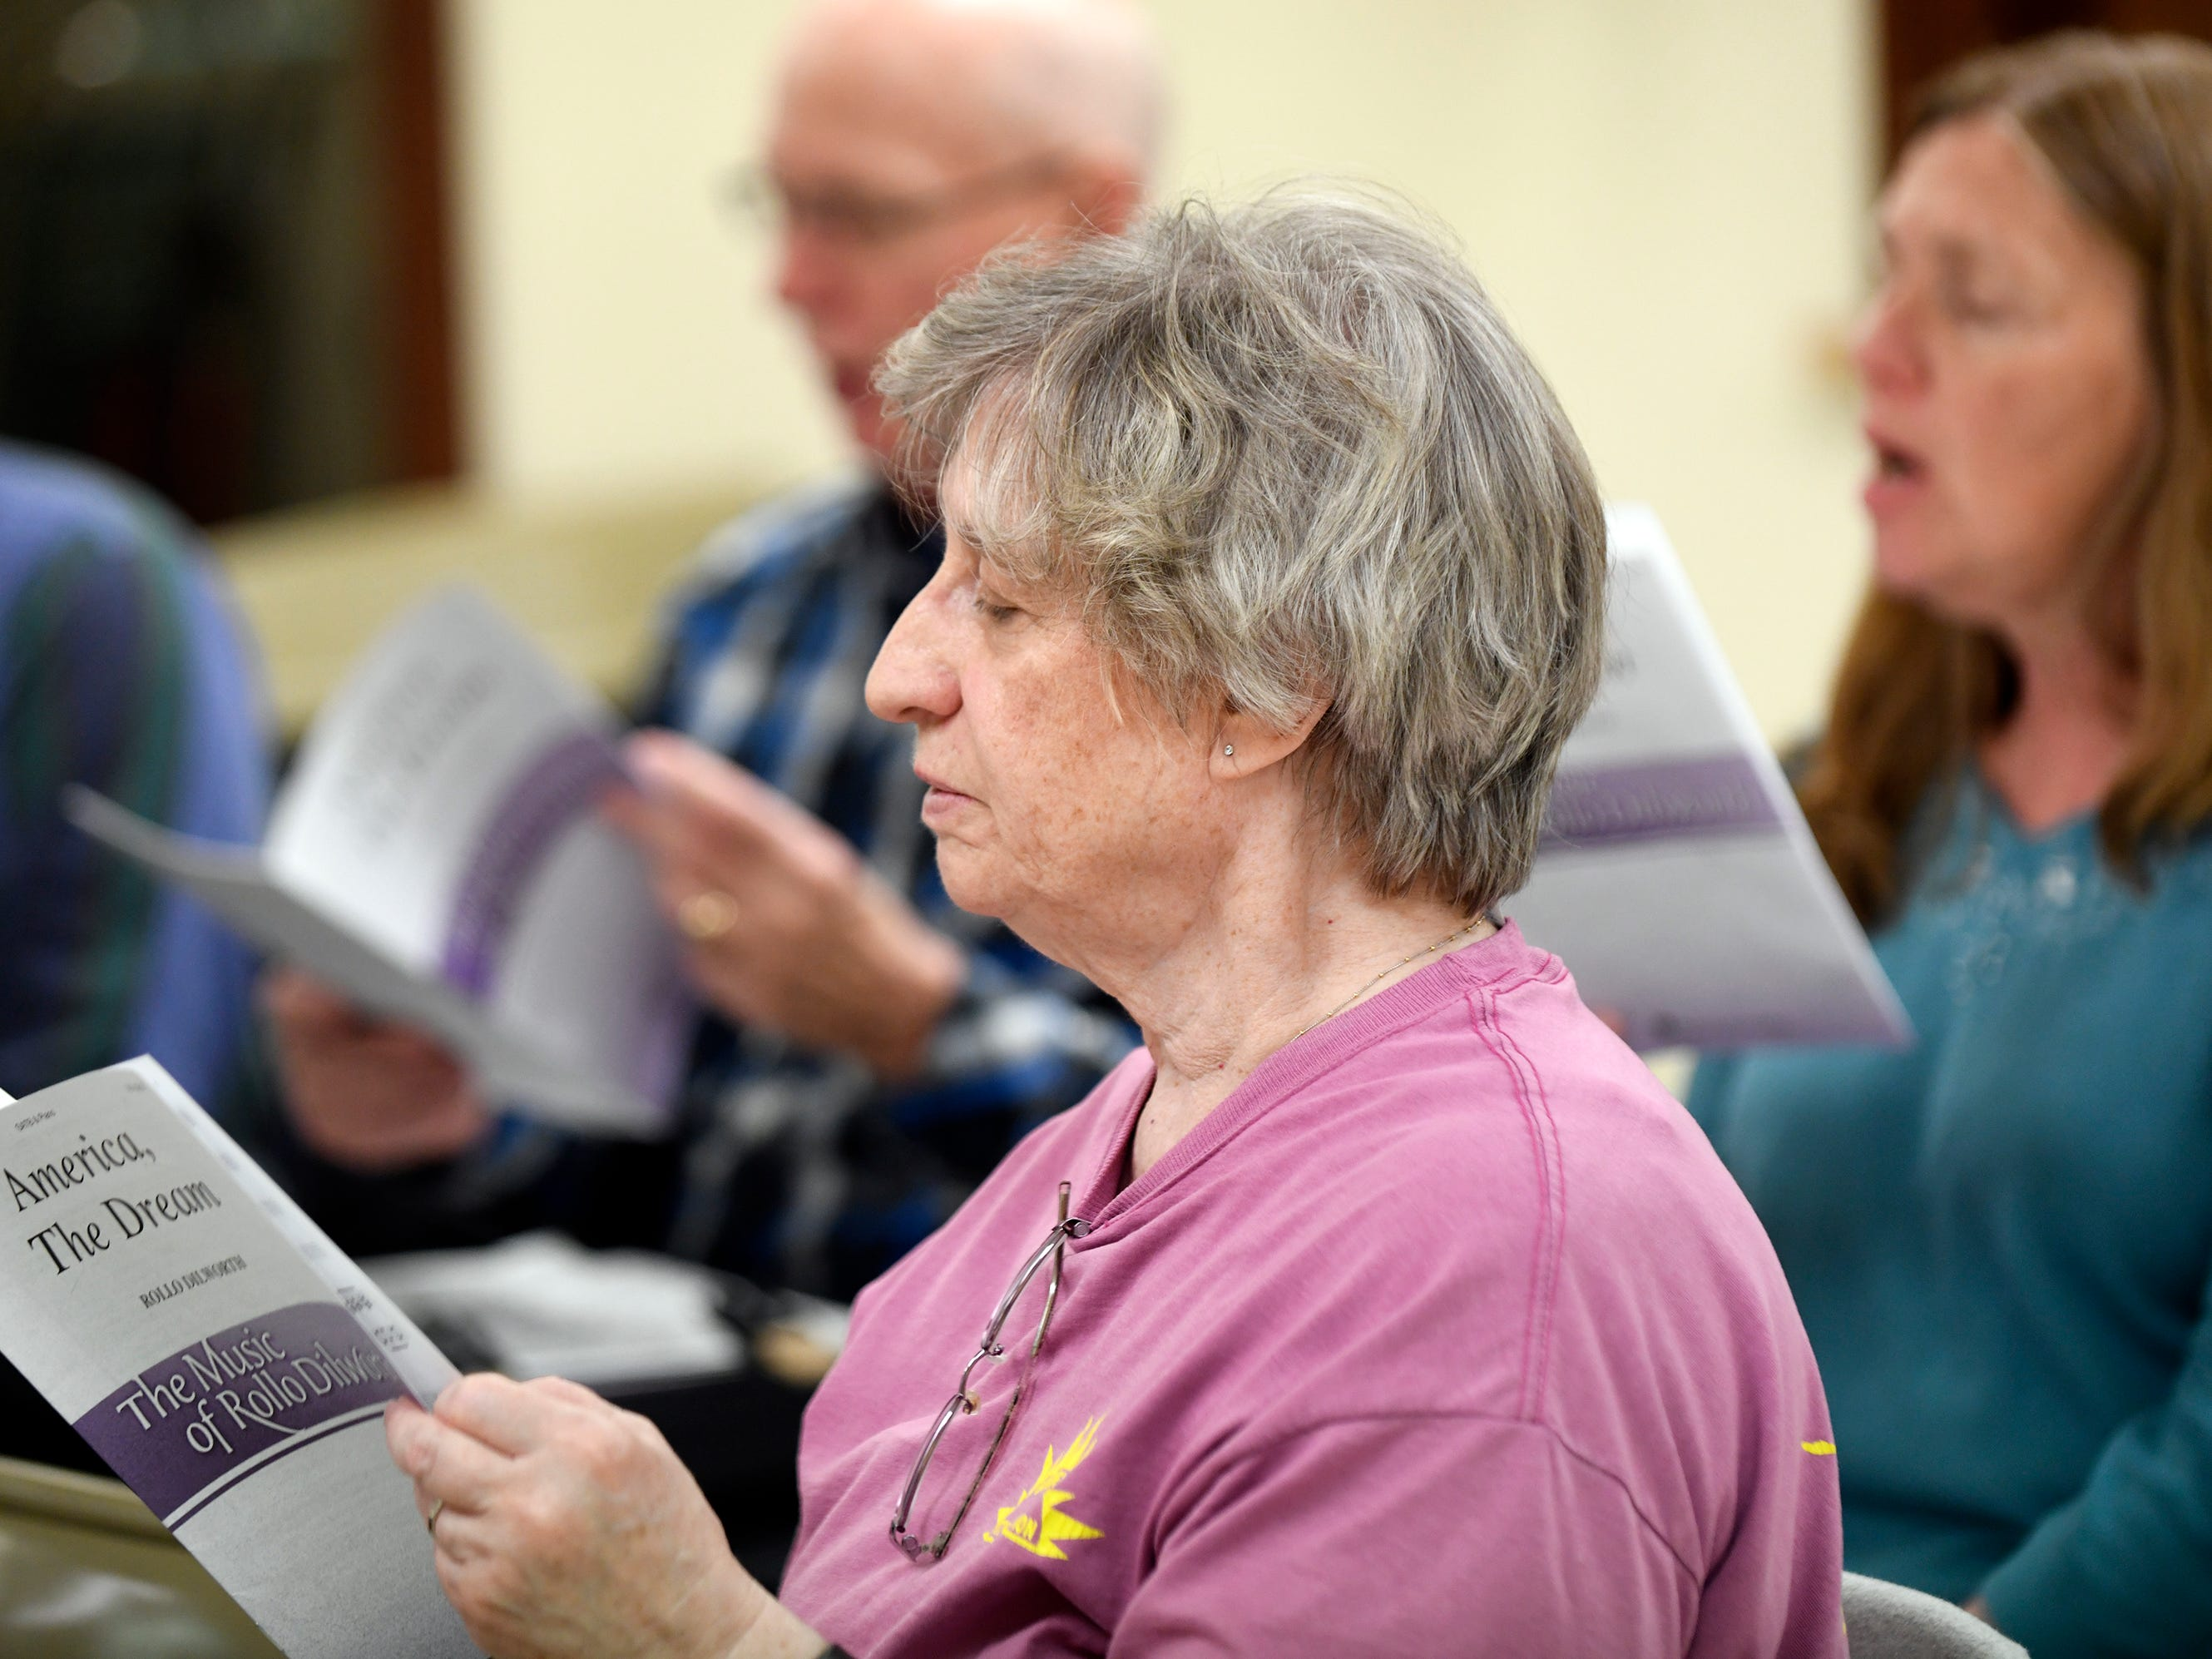 Cindy Paterno, a member of Vineland's Singing Ambassadors, sings during rehearsal at the Vineland Senior Center on Monday.